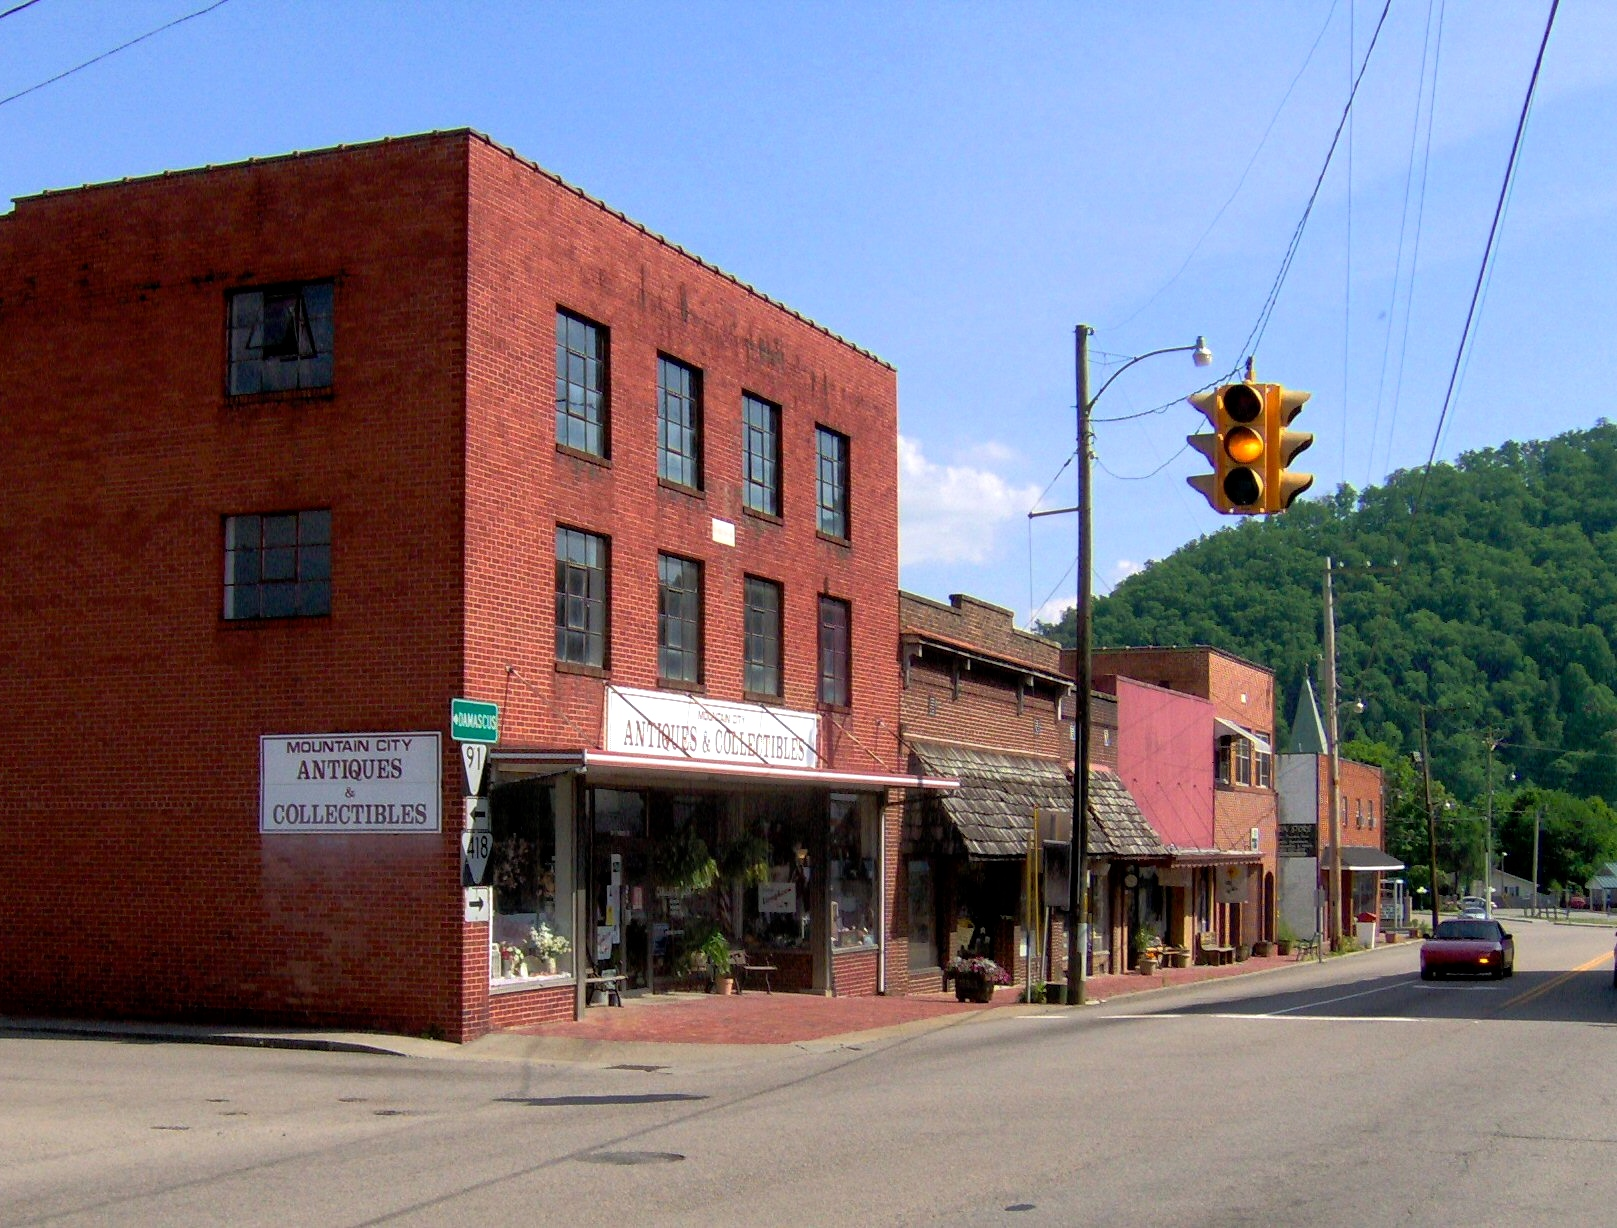 1000 images about mountain city tn my hometown on for Small towns in tennessee near memphis